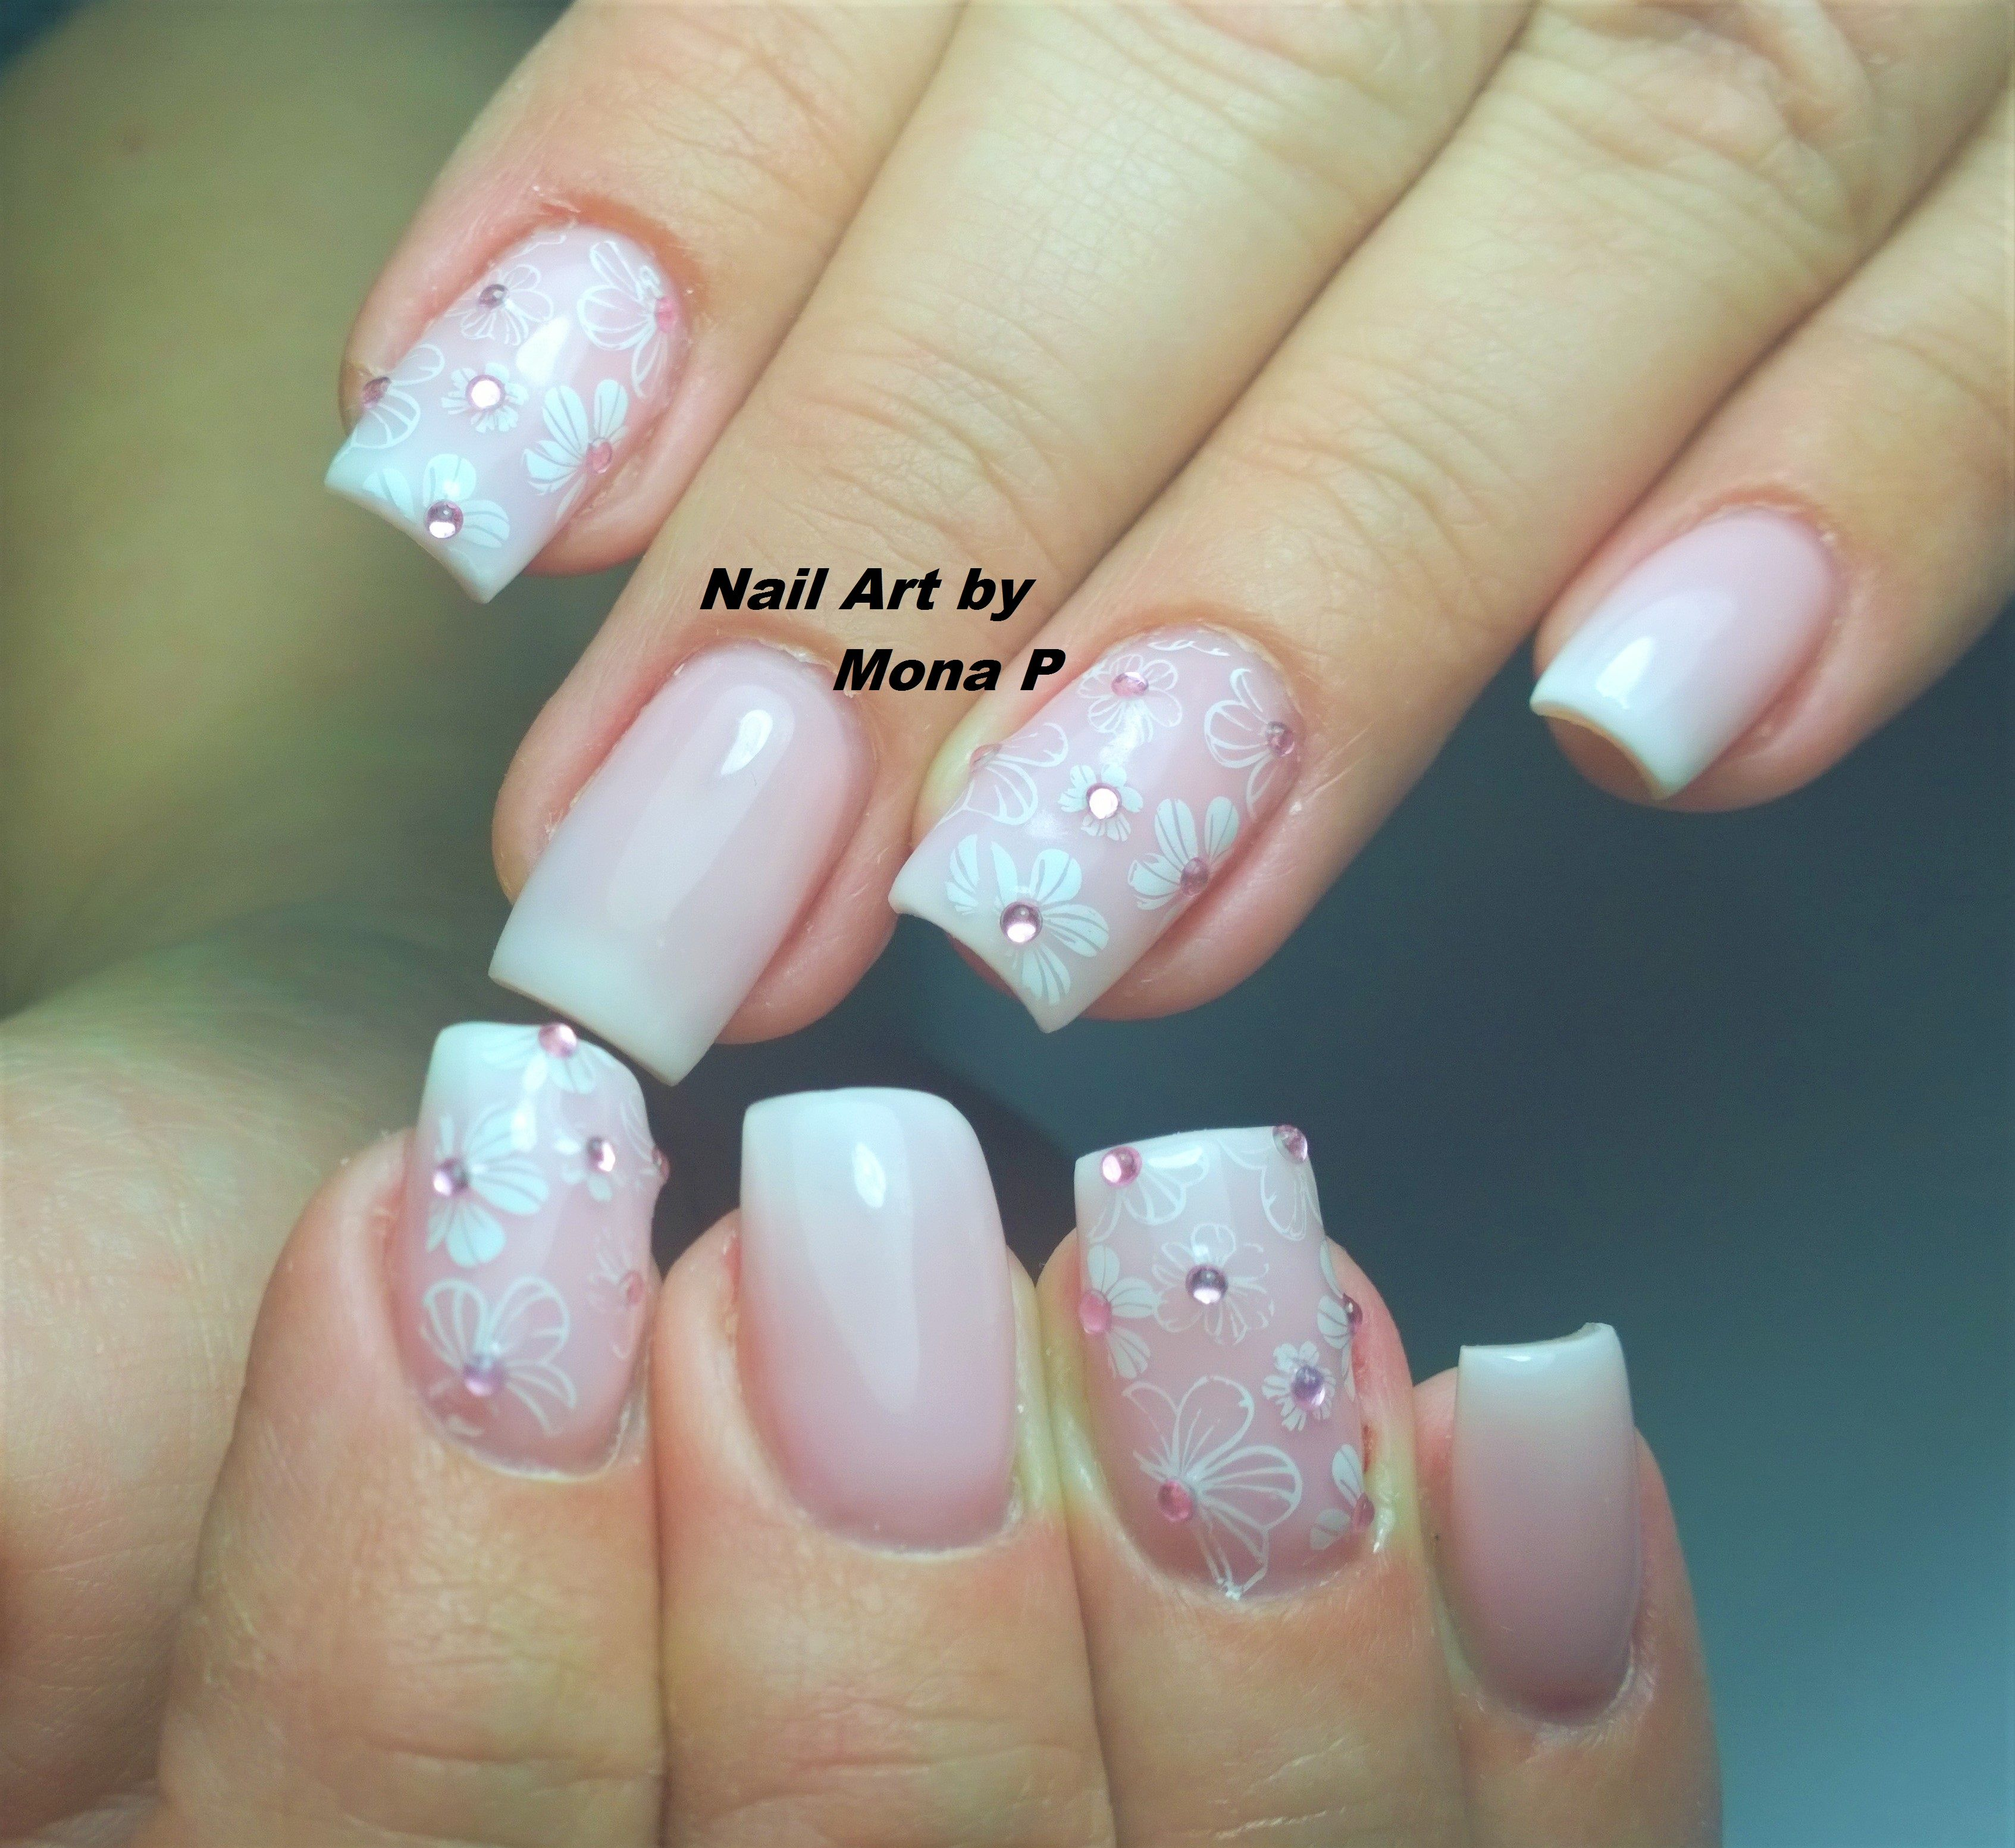 About baby boomer nail art tutorial by nded on pinterest nail art - Baby Boomer Nail Art Nail Art By Mona P Pinterest Nail Nail Art Baby